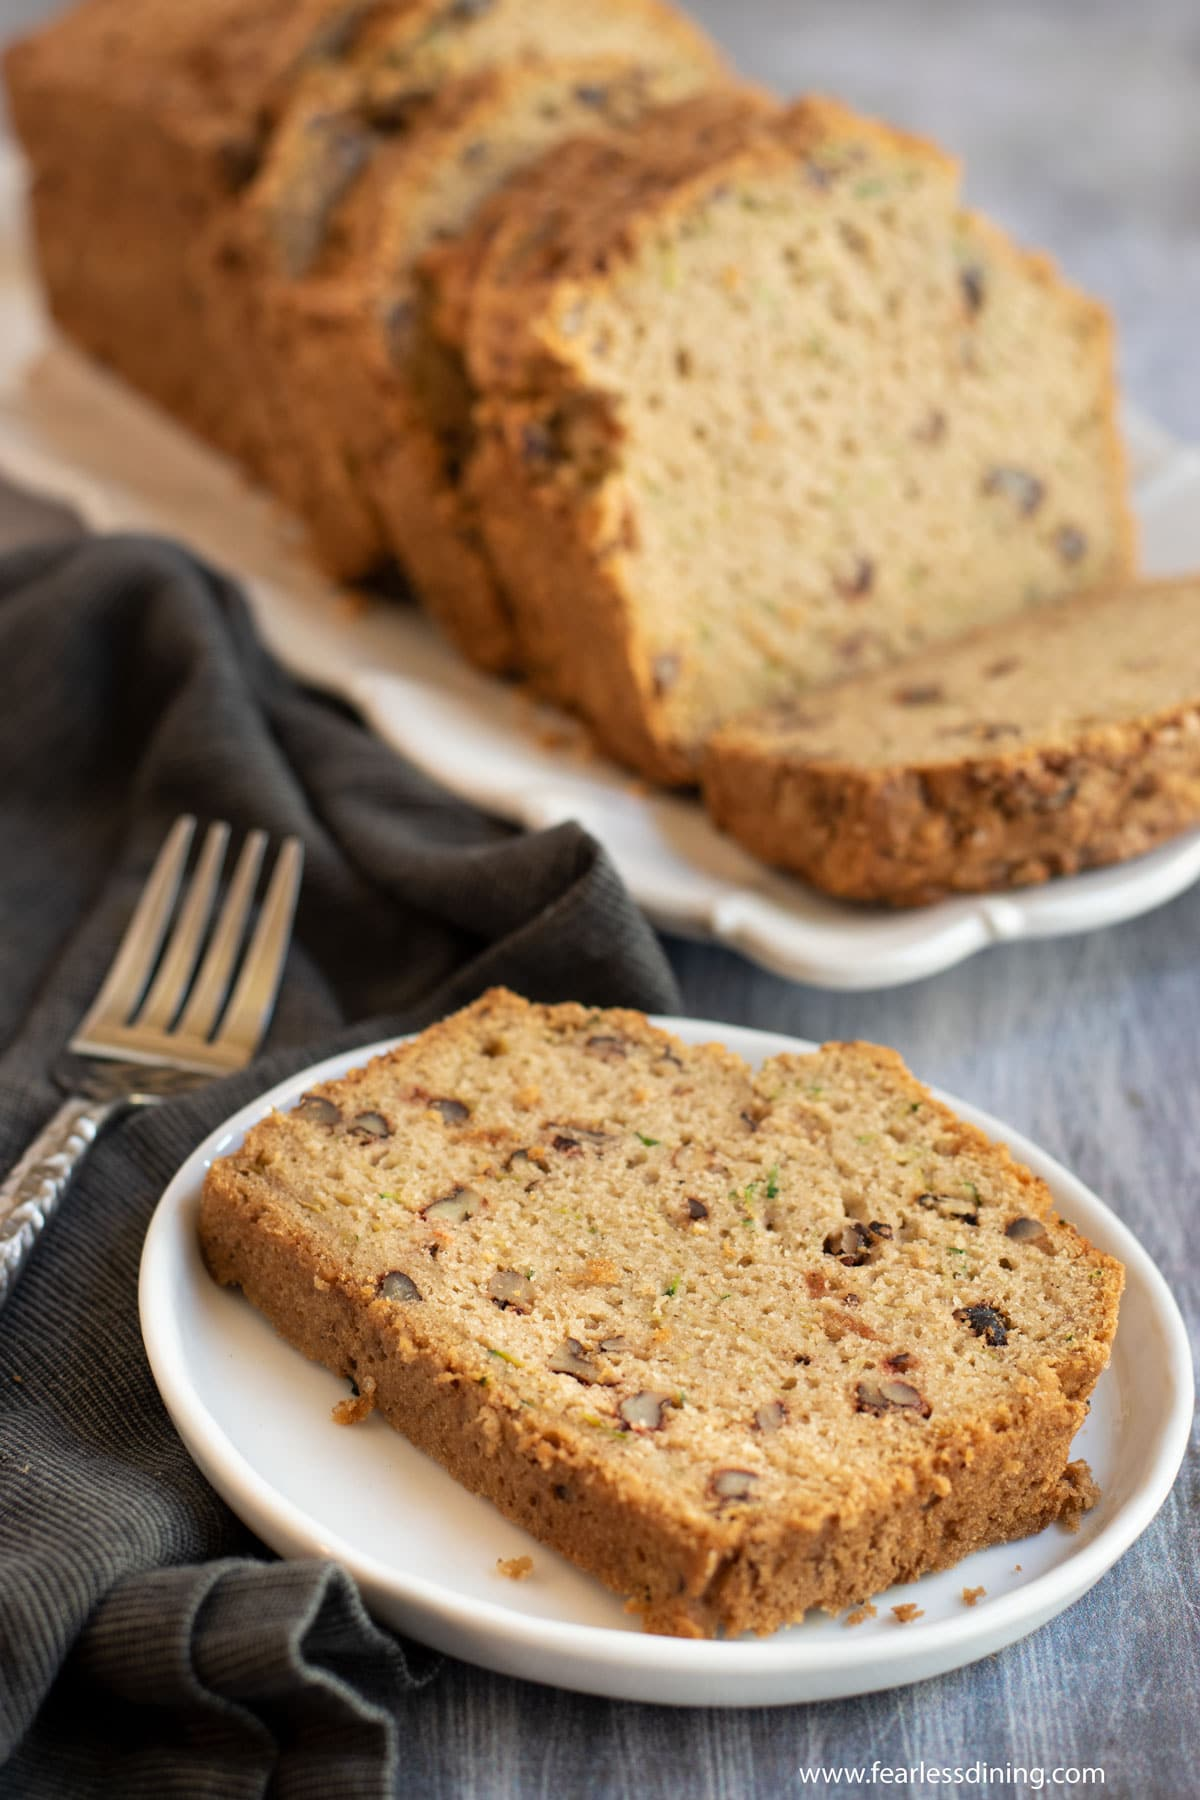 a slice of zucchini bread on a plate next to the loaf